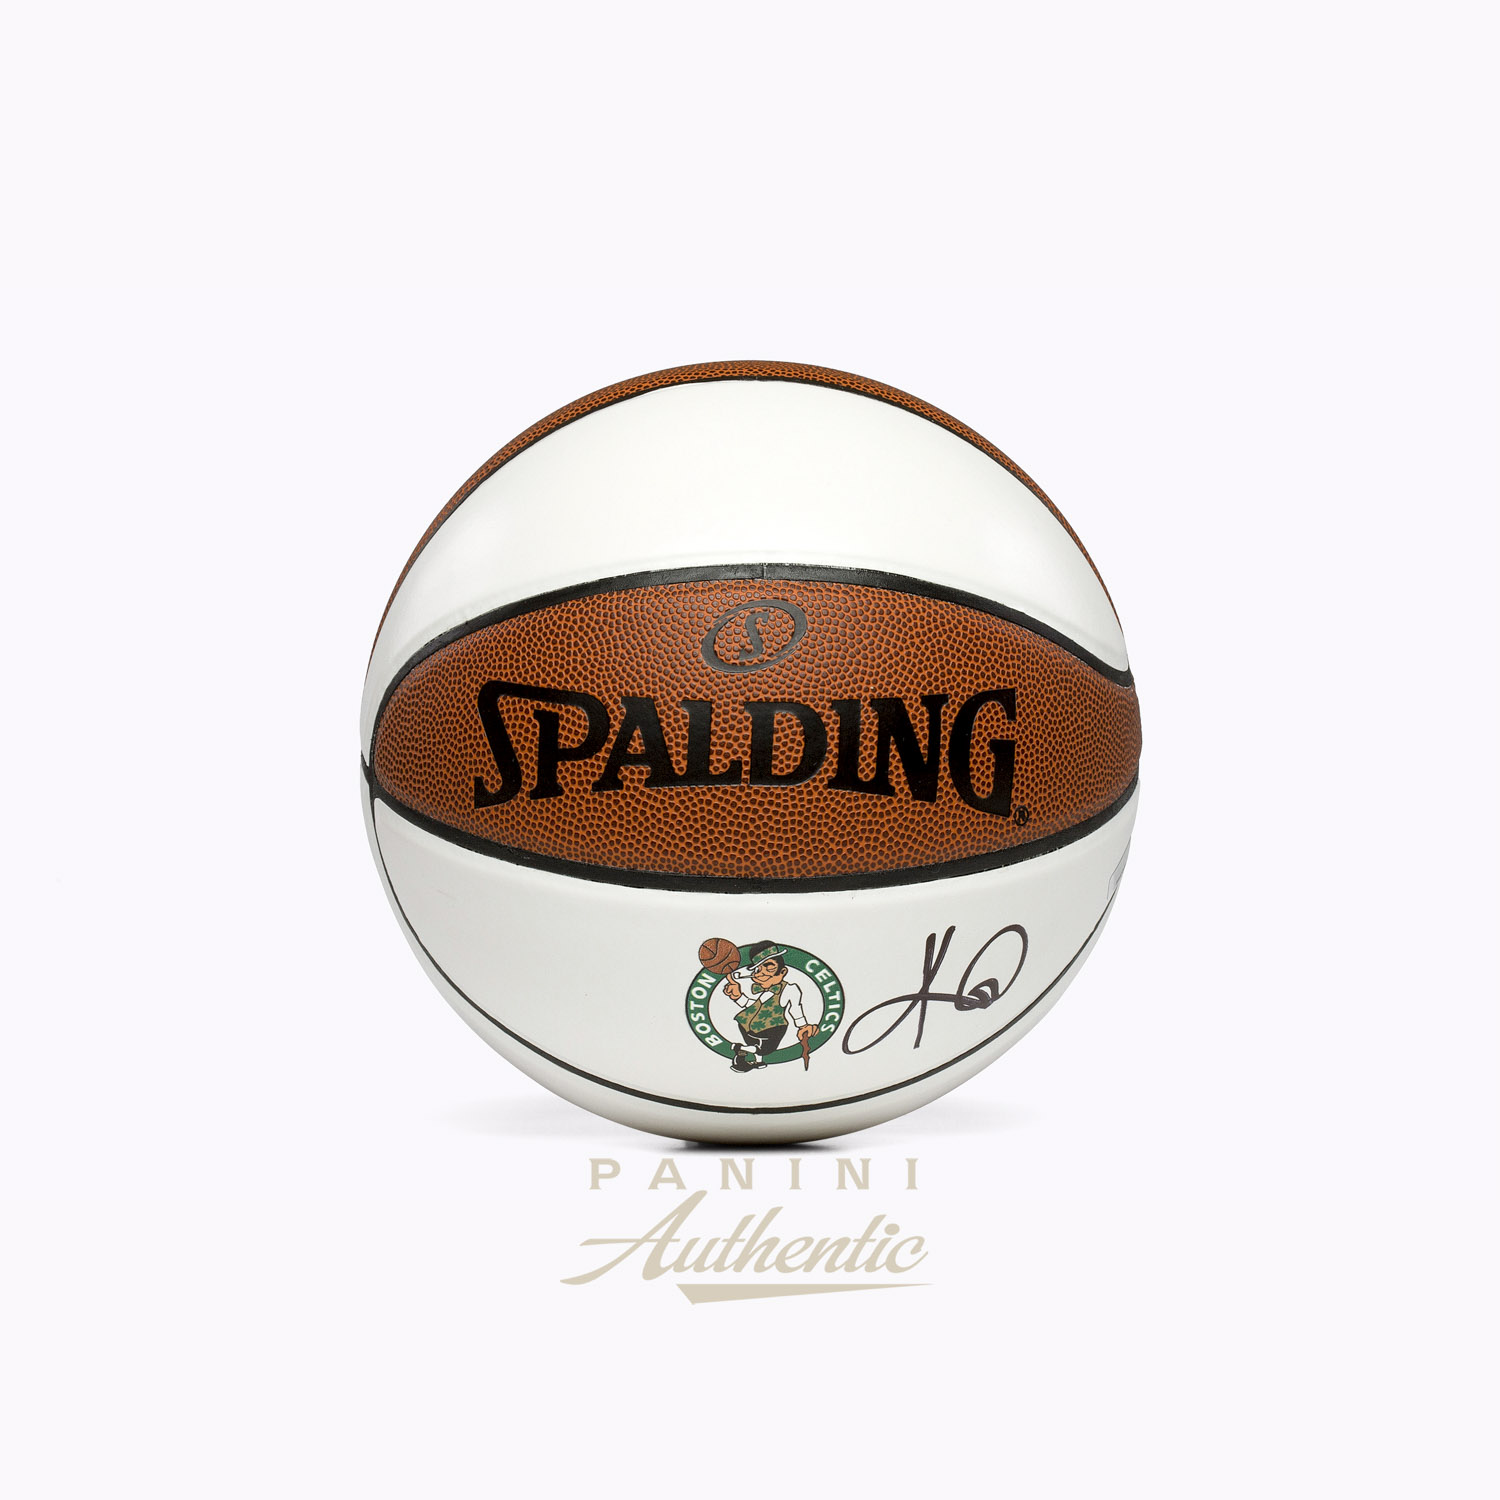 9590fdfb491 Kyrie Irving Autographed Boston Celtics White Panel Basketball ~Open  Edition Item~